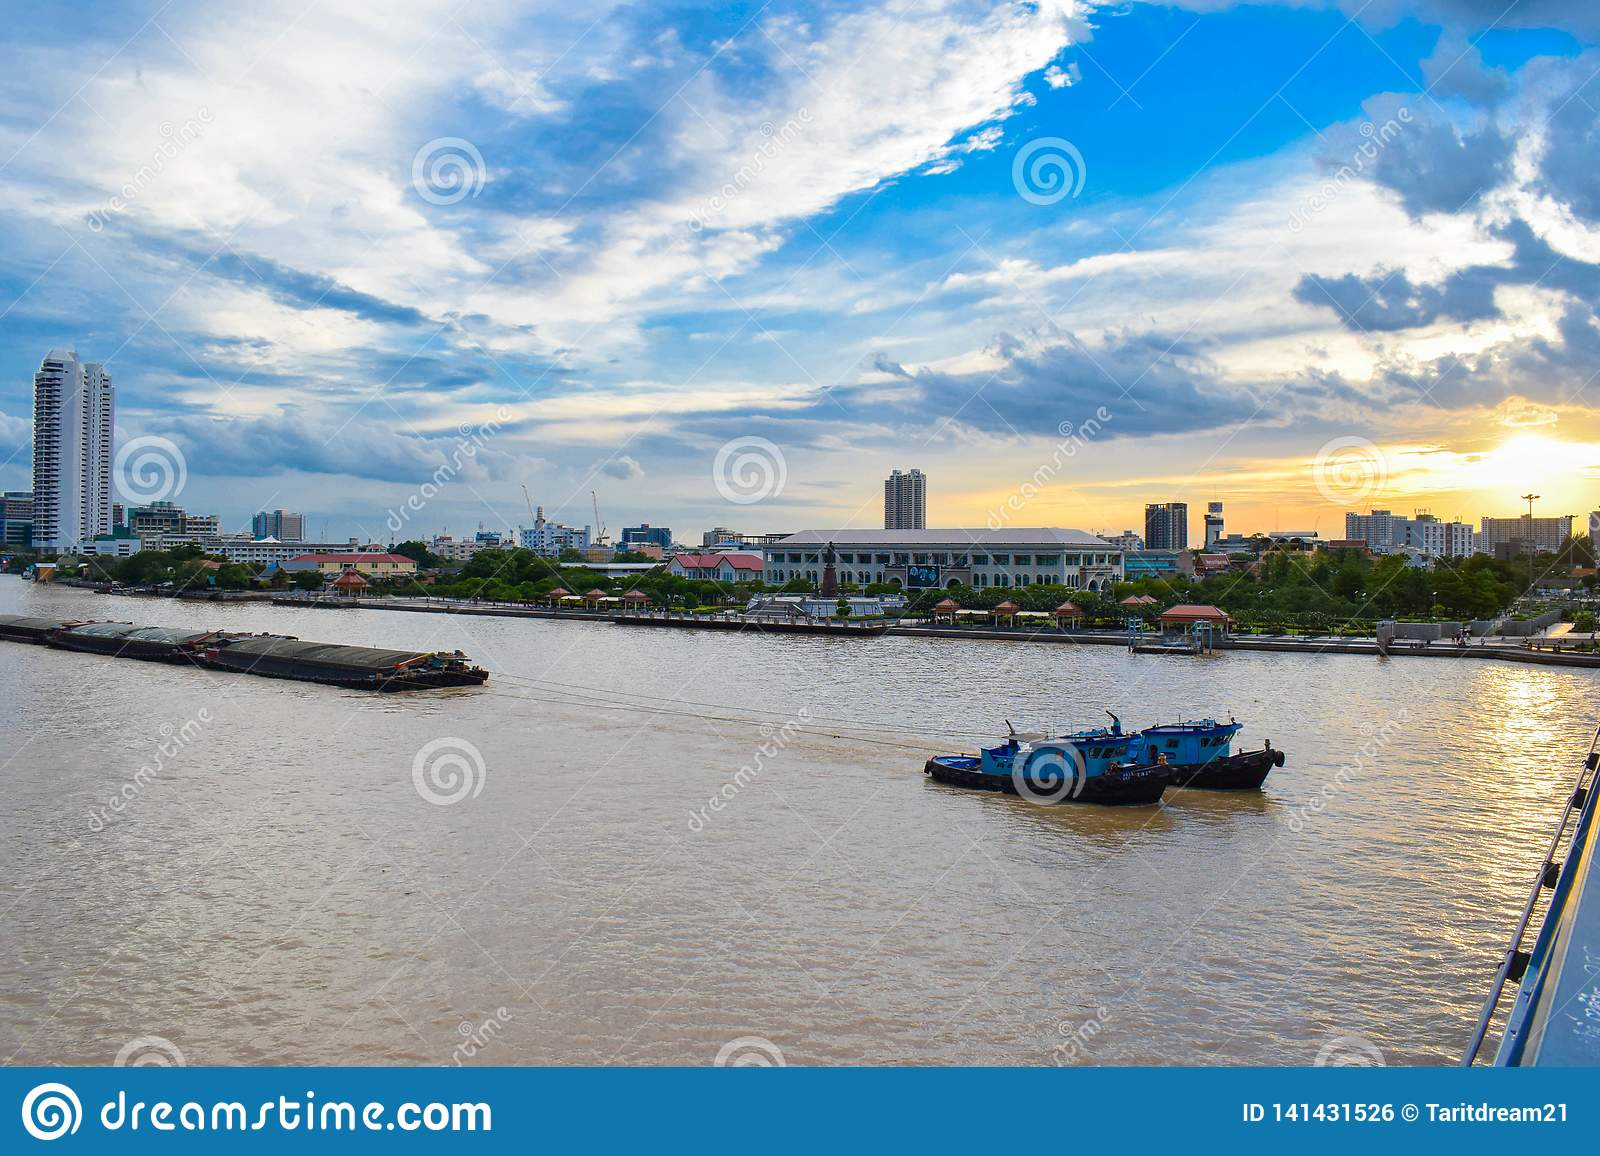 The cargo ship is one of the things seen in the Chao Phraya River that is adjacent to the capital, Bangkok